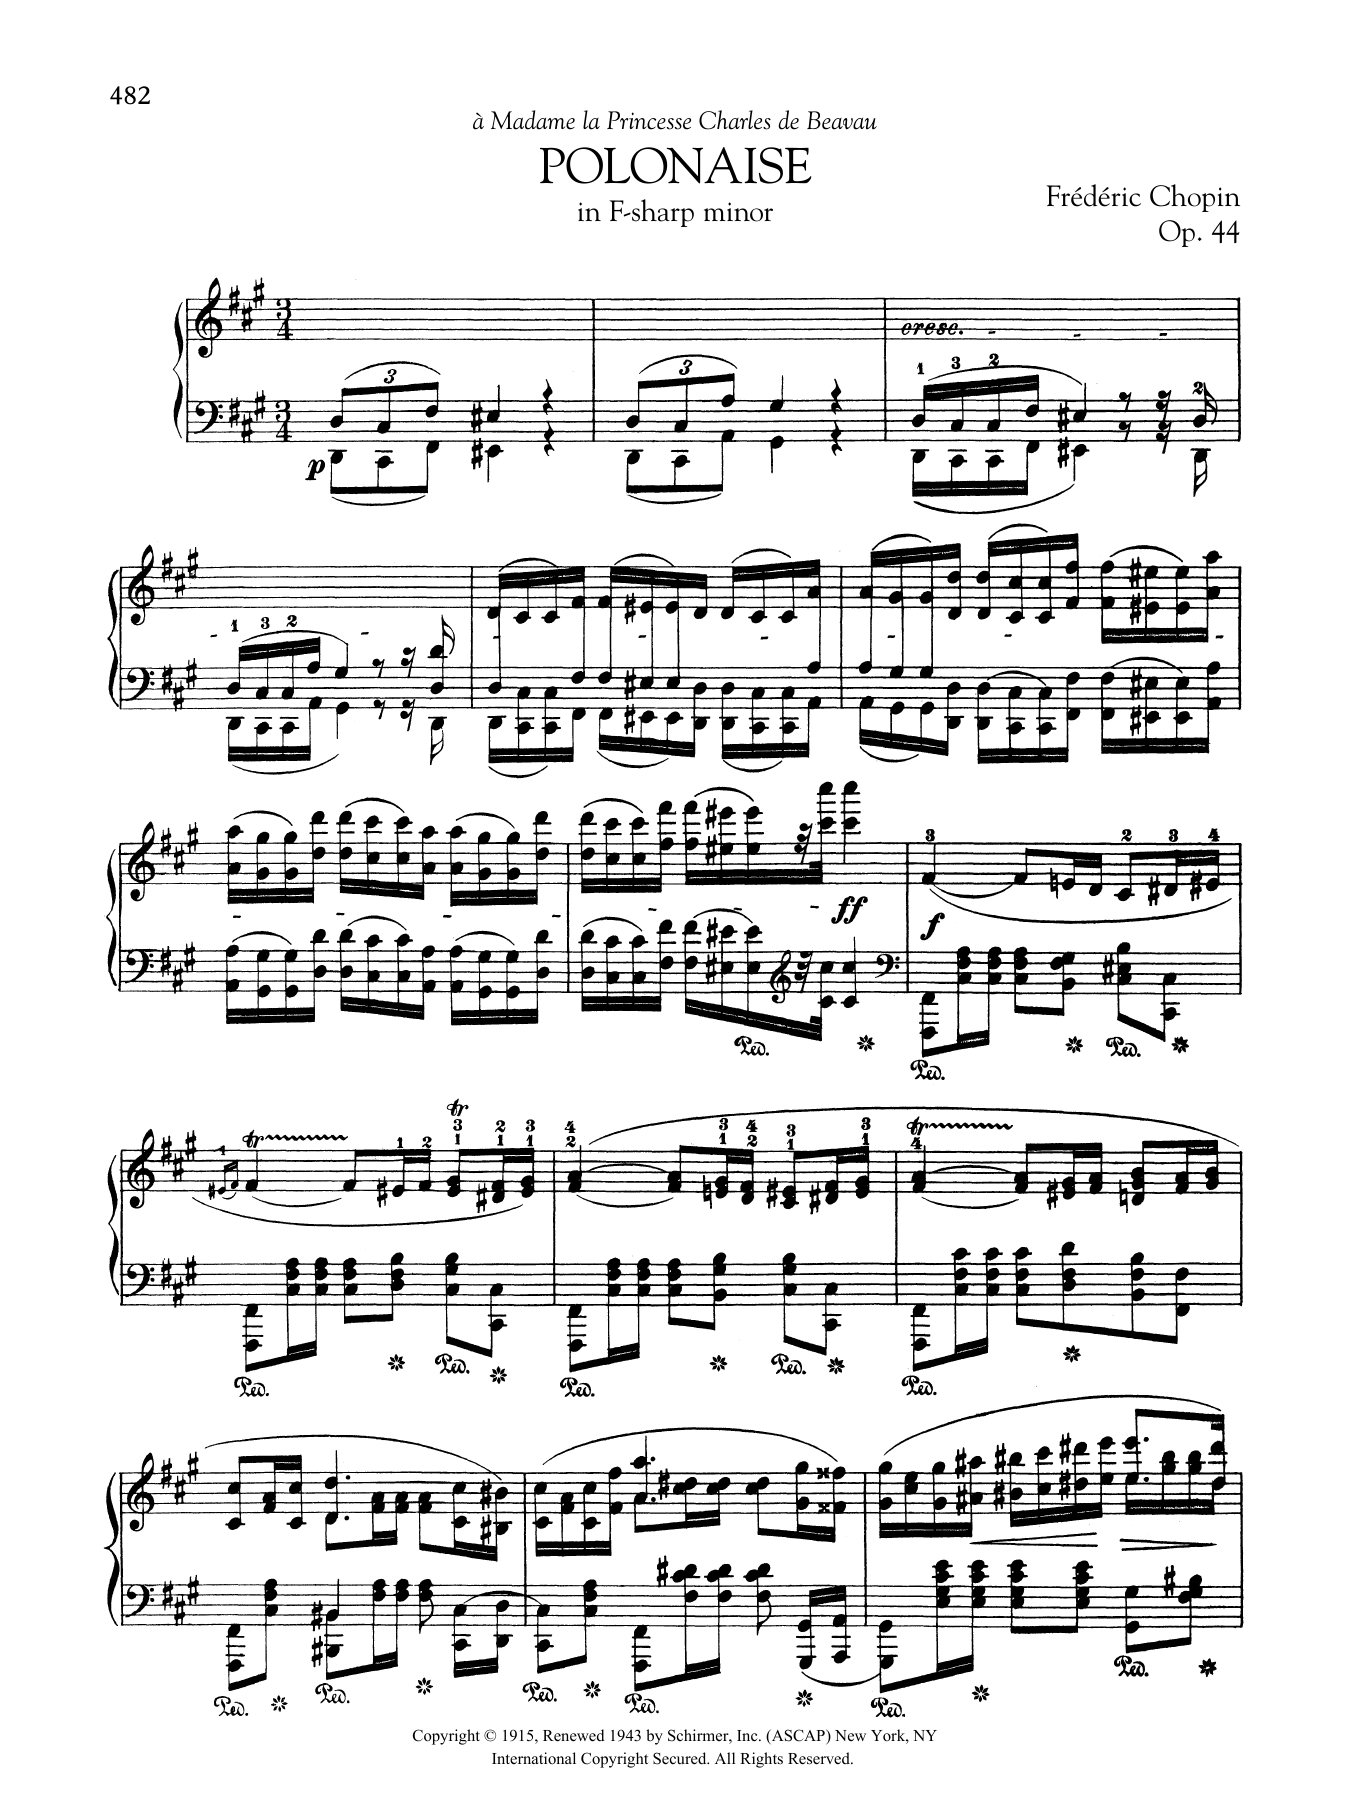 Polonaise in F-sharp minor, Op. 44 Sheet Music